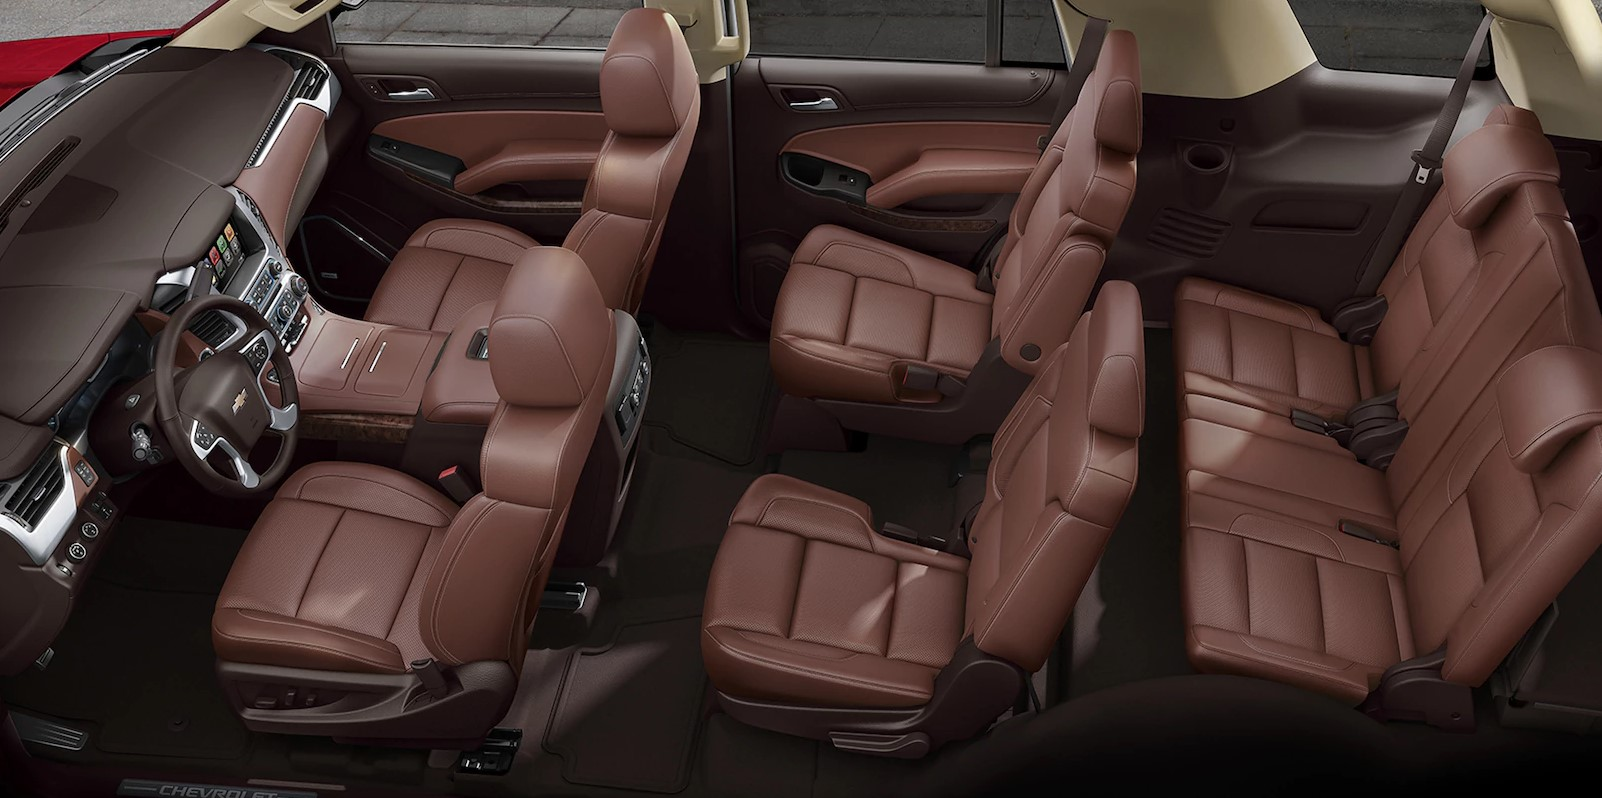 2018 Chevrolet Tahoe Brown Leather Interior